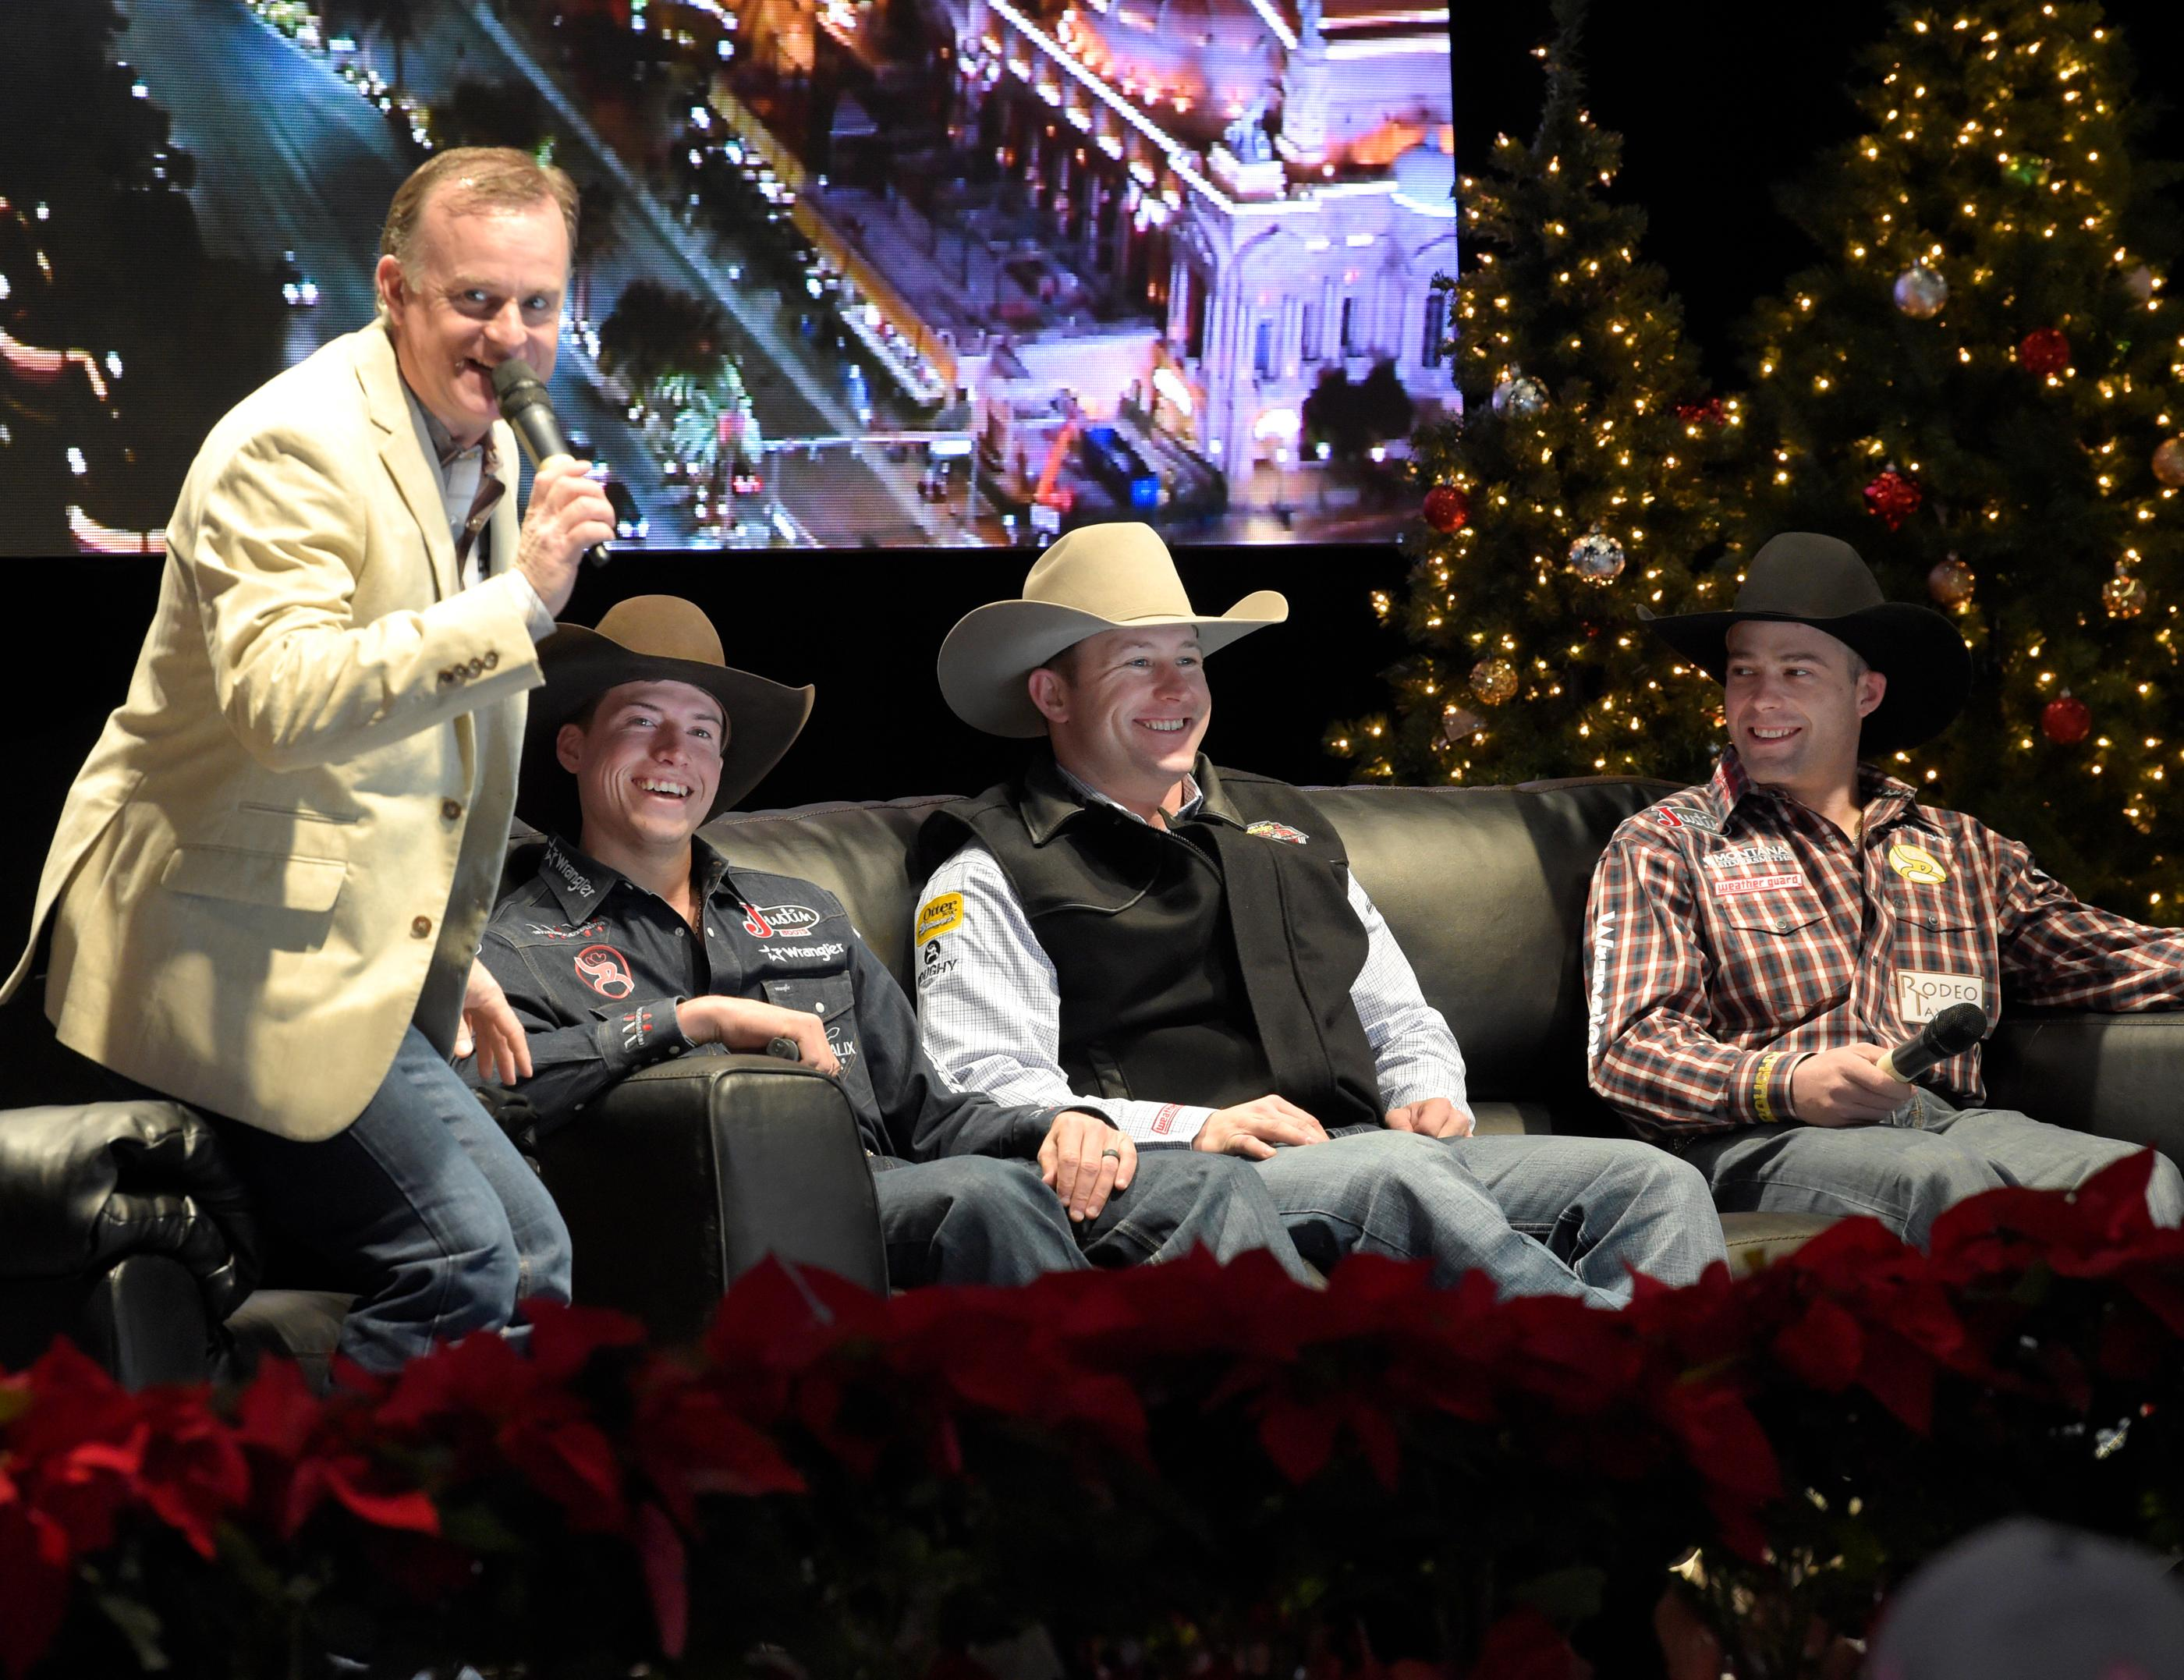 """Outside the Barrel"" with Flint Rasmussen, Entertainer and Rodeo Clown, as he interviews Bull Riders (l-r) Cody Webster, Nate Jestes and Dusty Tuckness during Cowboy Christmas on the Rodeo Live Stage at the Las Vegas Convention Center. Sunday December 10, 2017. [Glenn Pinkerton/Las Vegas News Bureau]"